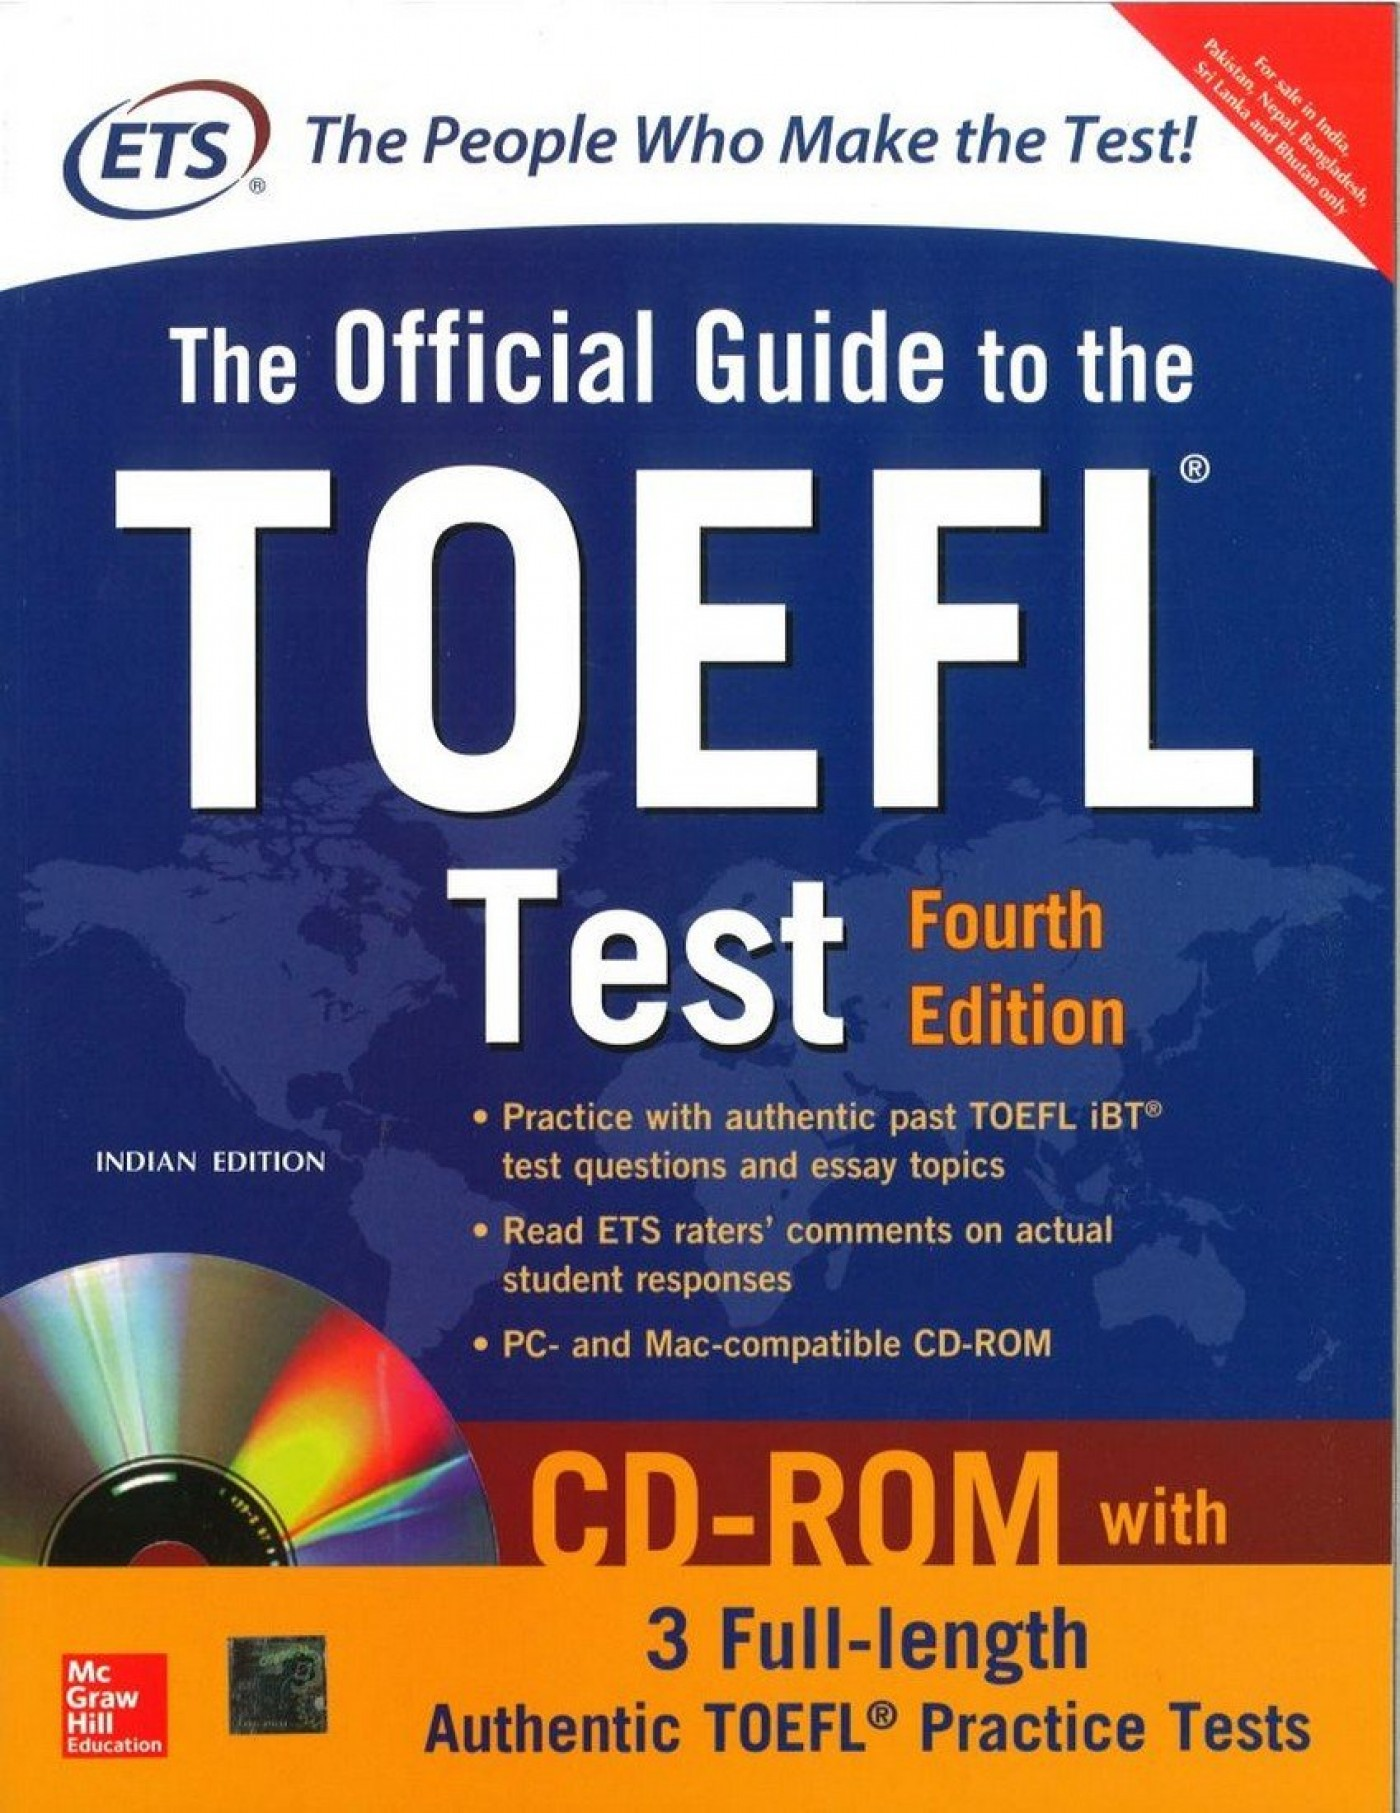 014 Toefl Ibt Essay Topics 71ecb6xtz3l Striking 2015 1400